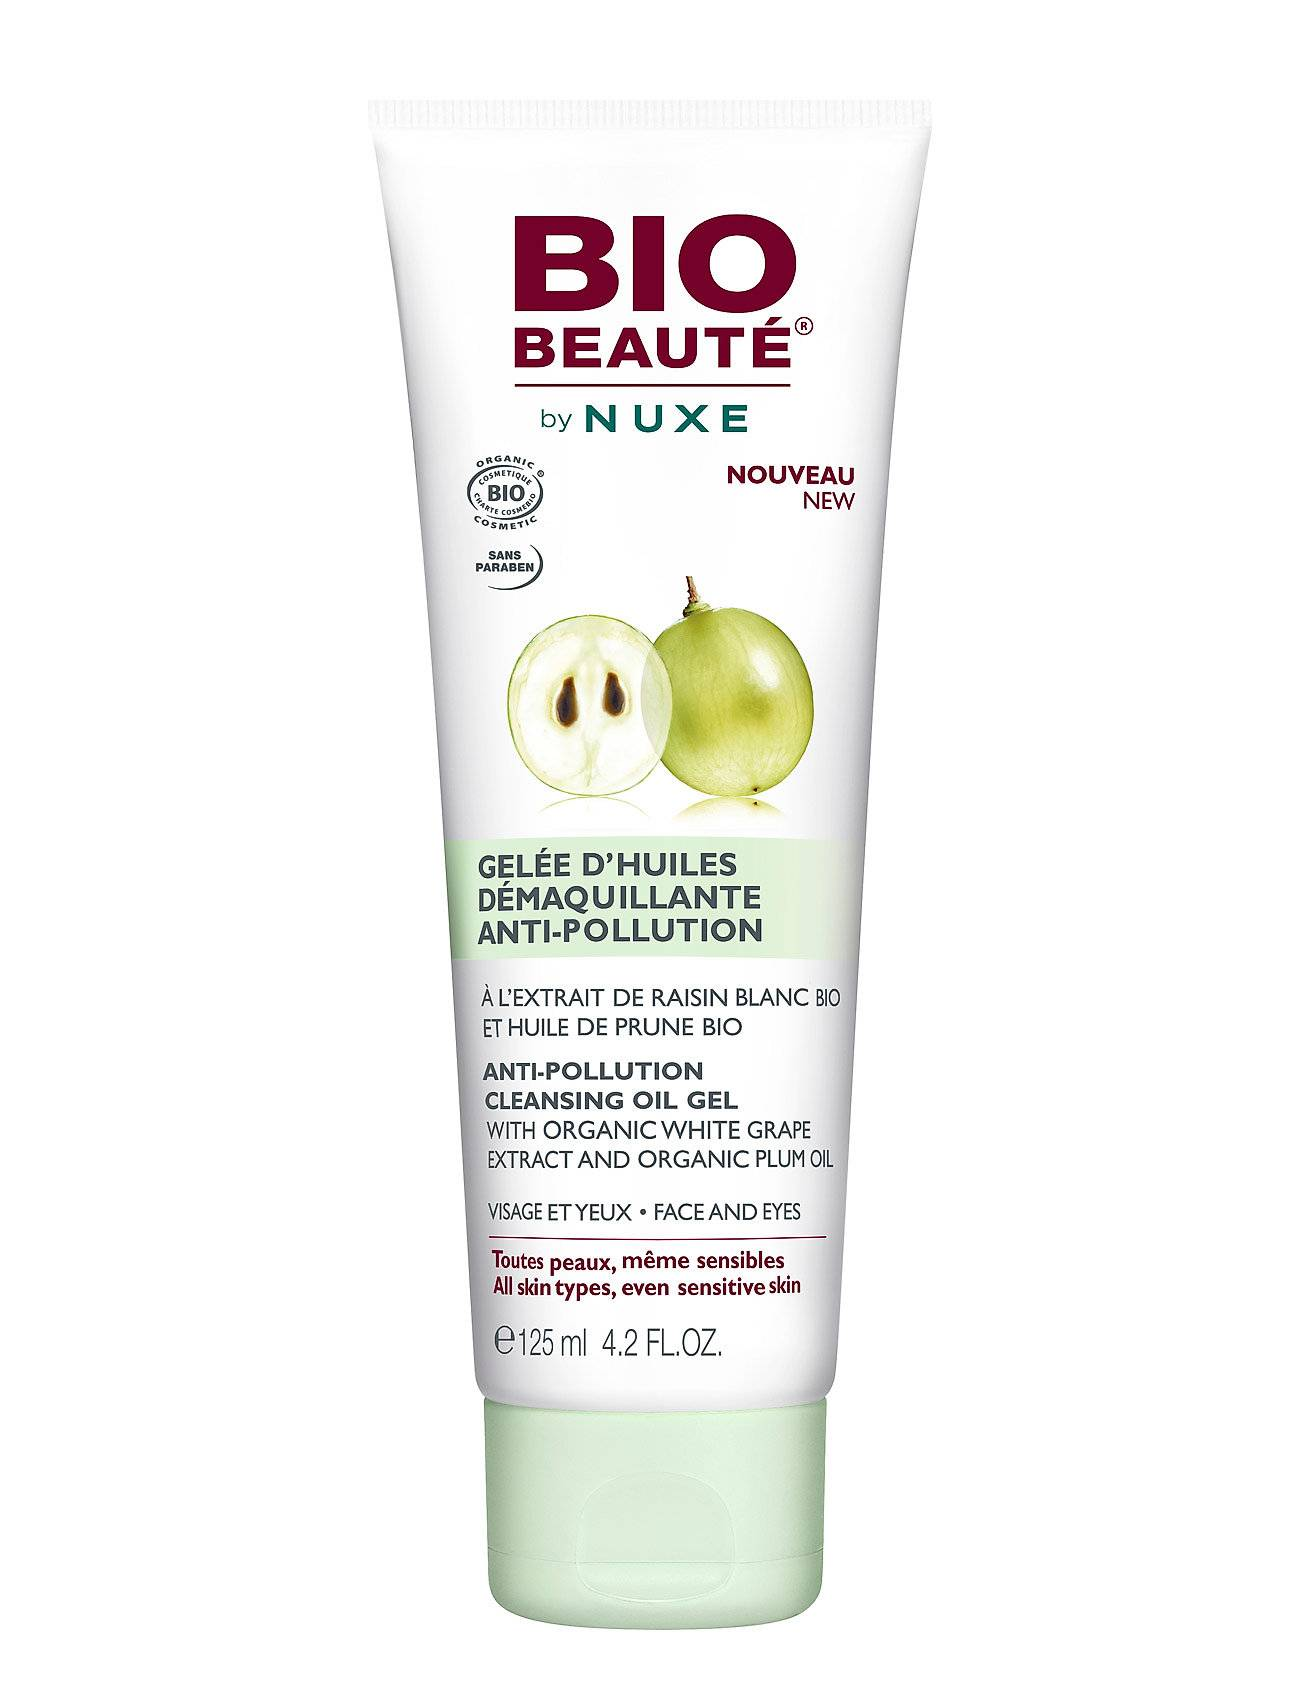 Bio-Beauté by NUXE Bb Cleansing Oil